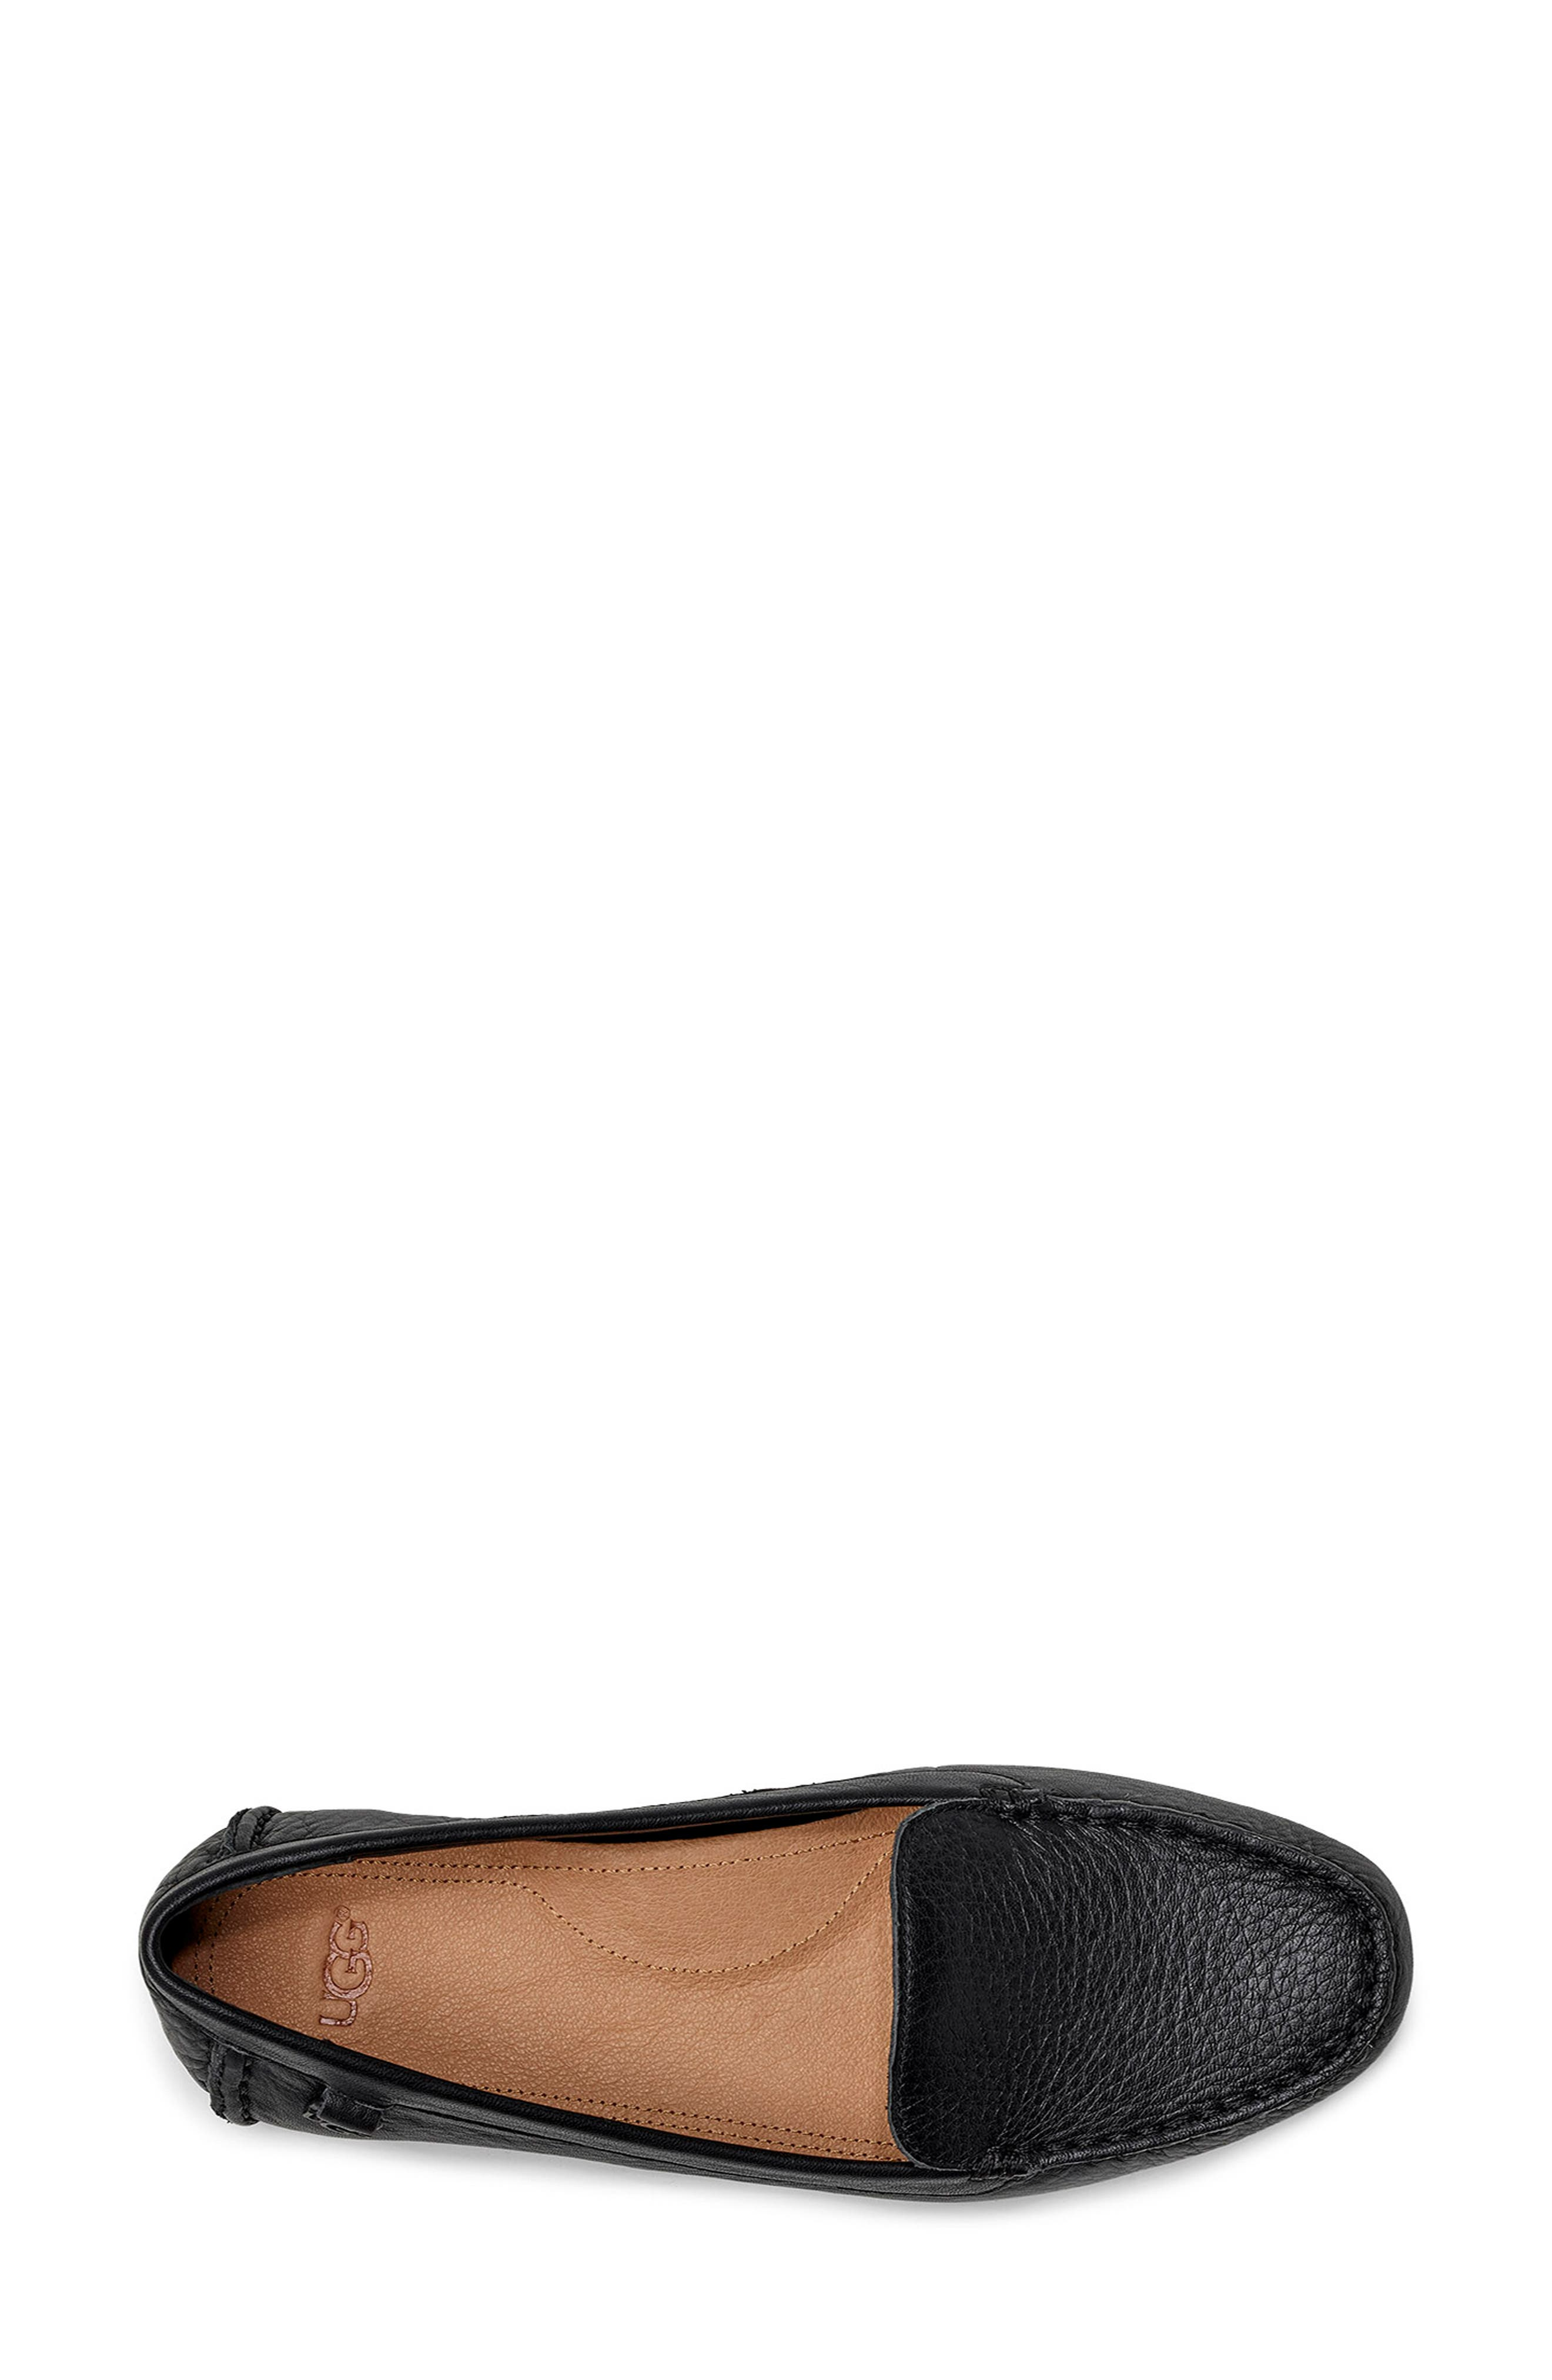 UGG<SUP>®</SUP>, Flores Driving Loafer, Alternate thumbnail 4, color, BLACK LEATHER